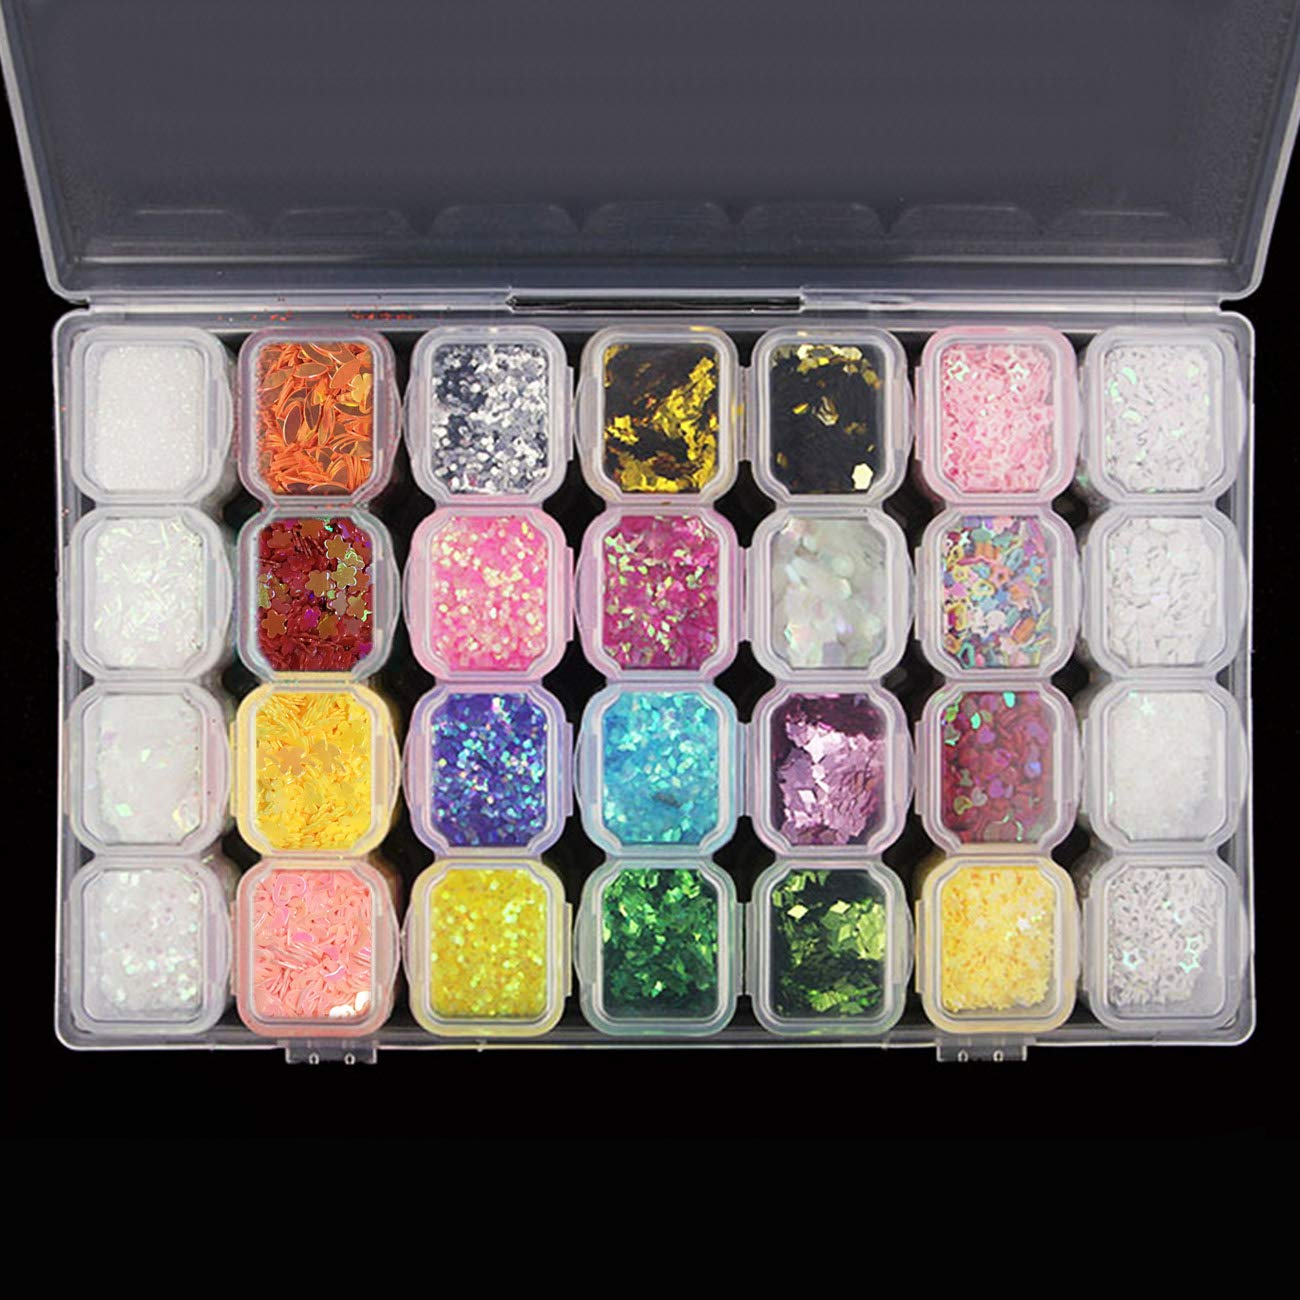 Open-Minded Glitter Powder Eyeshadow Makeup Sequin Diamond Colorful Glitter Gel Shiny Body Mermaid Festival Powder Pigment Makeup Cosmetics Bright And Translucent In Appearance Beauty Essentials